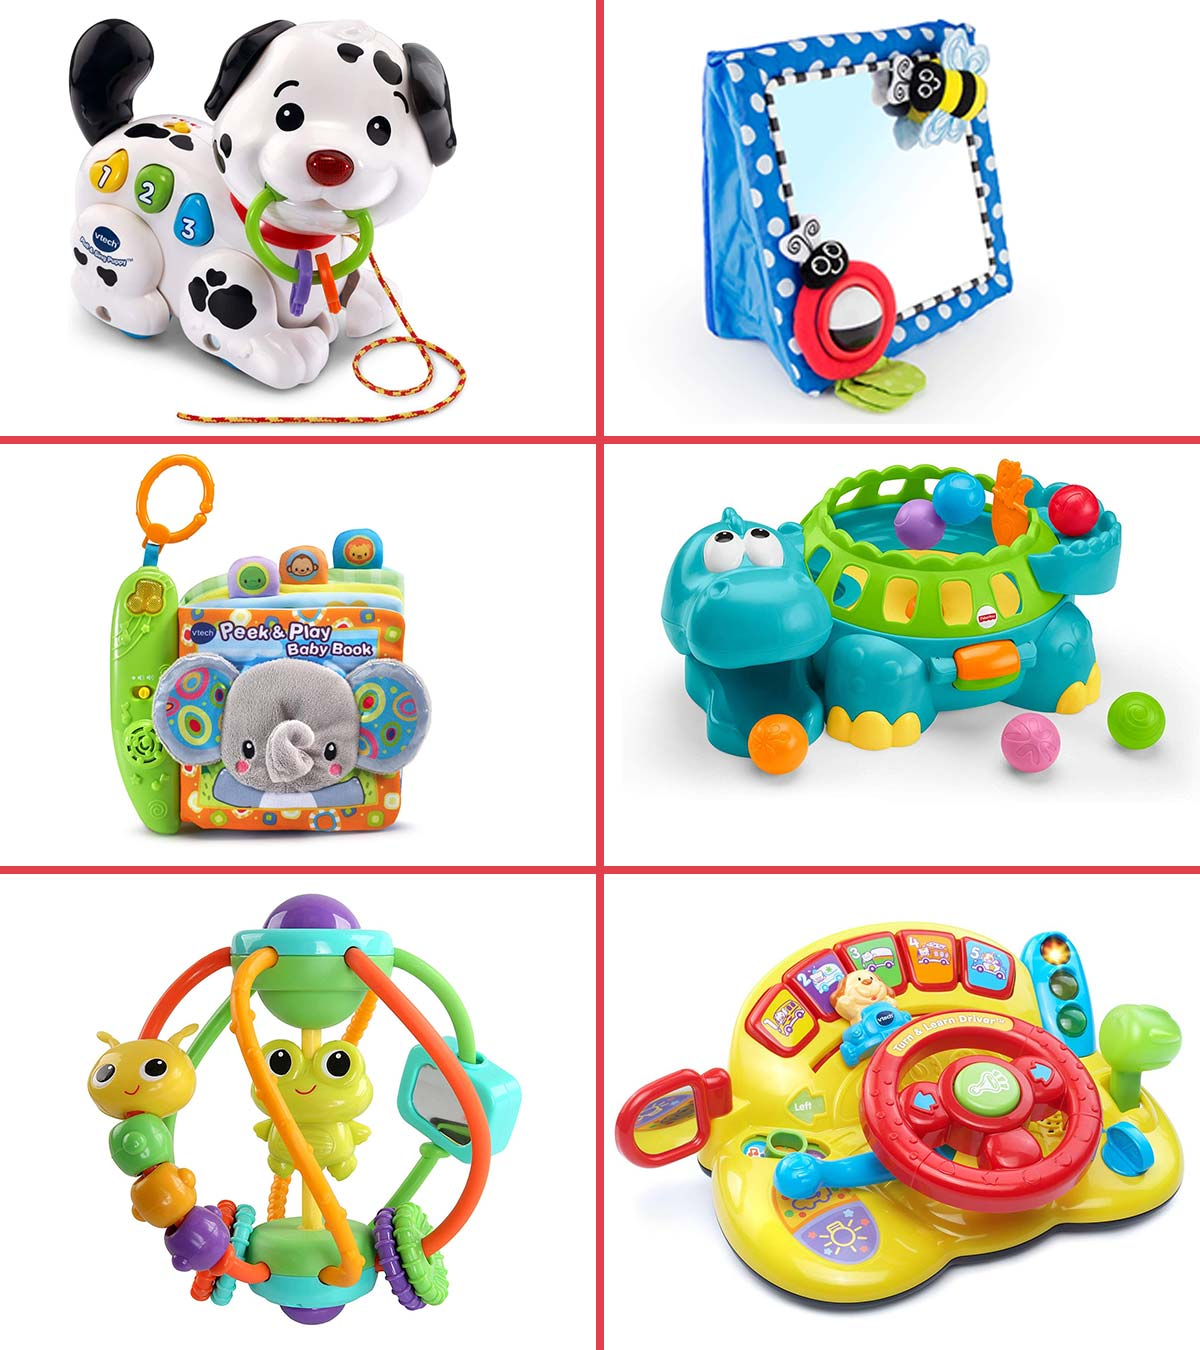 21 Best Toys For A 7 Month Old Baby In 2020